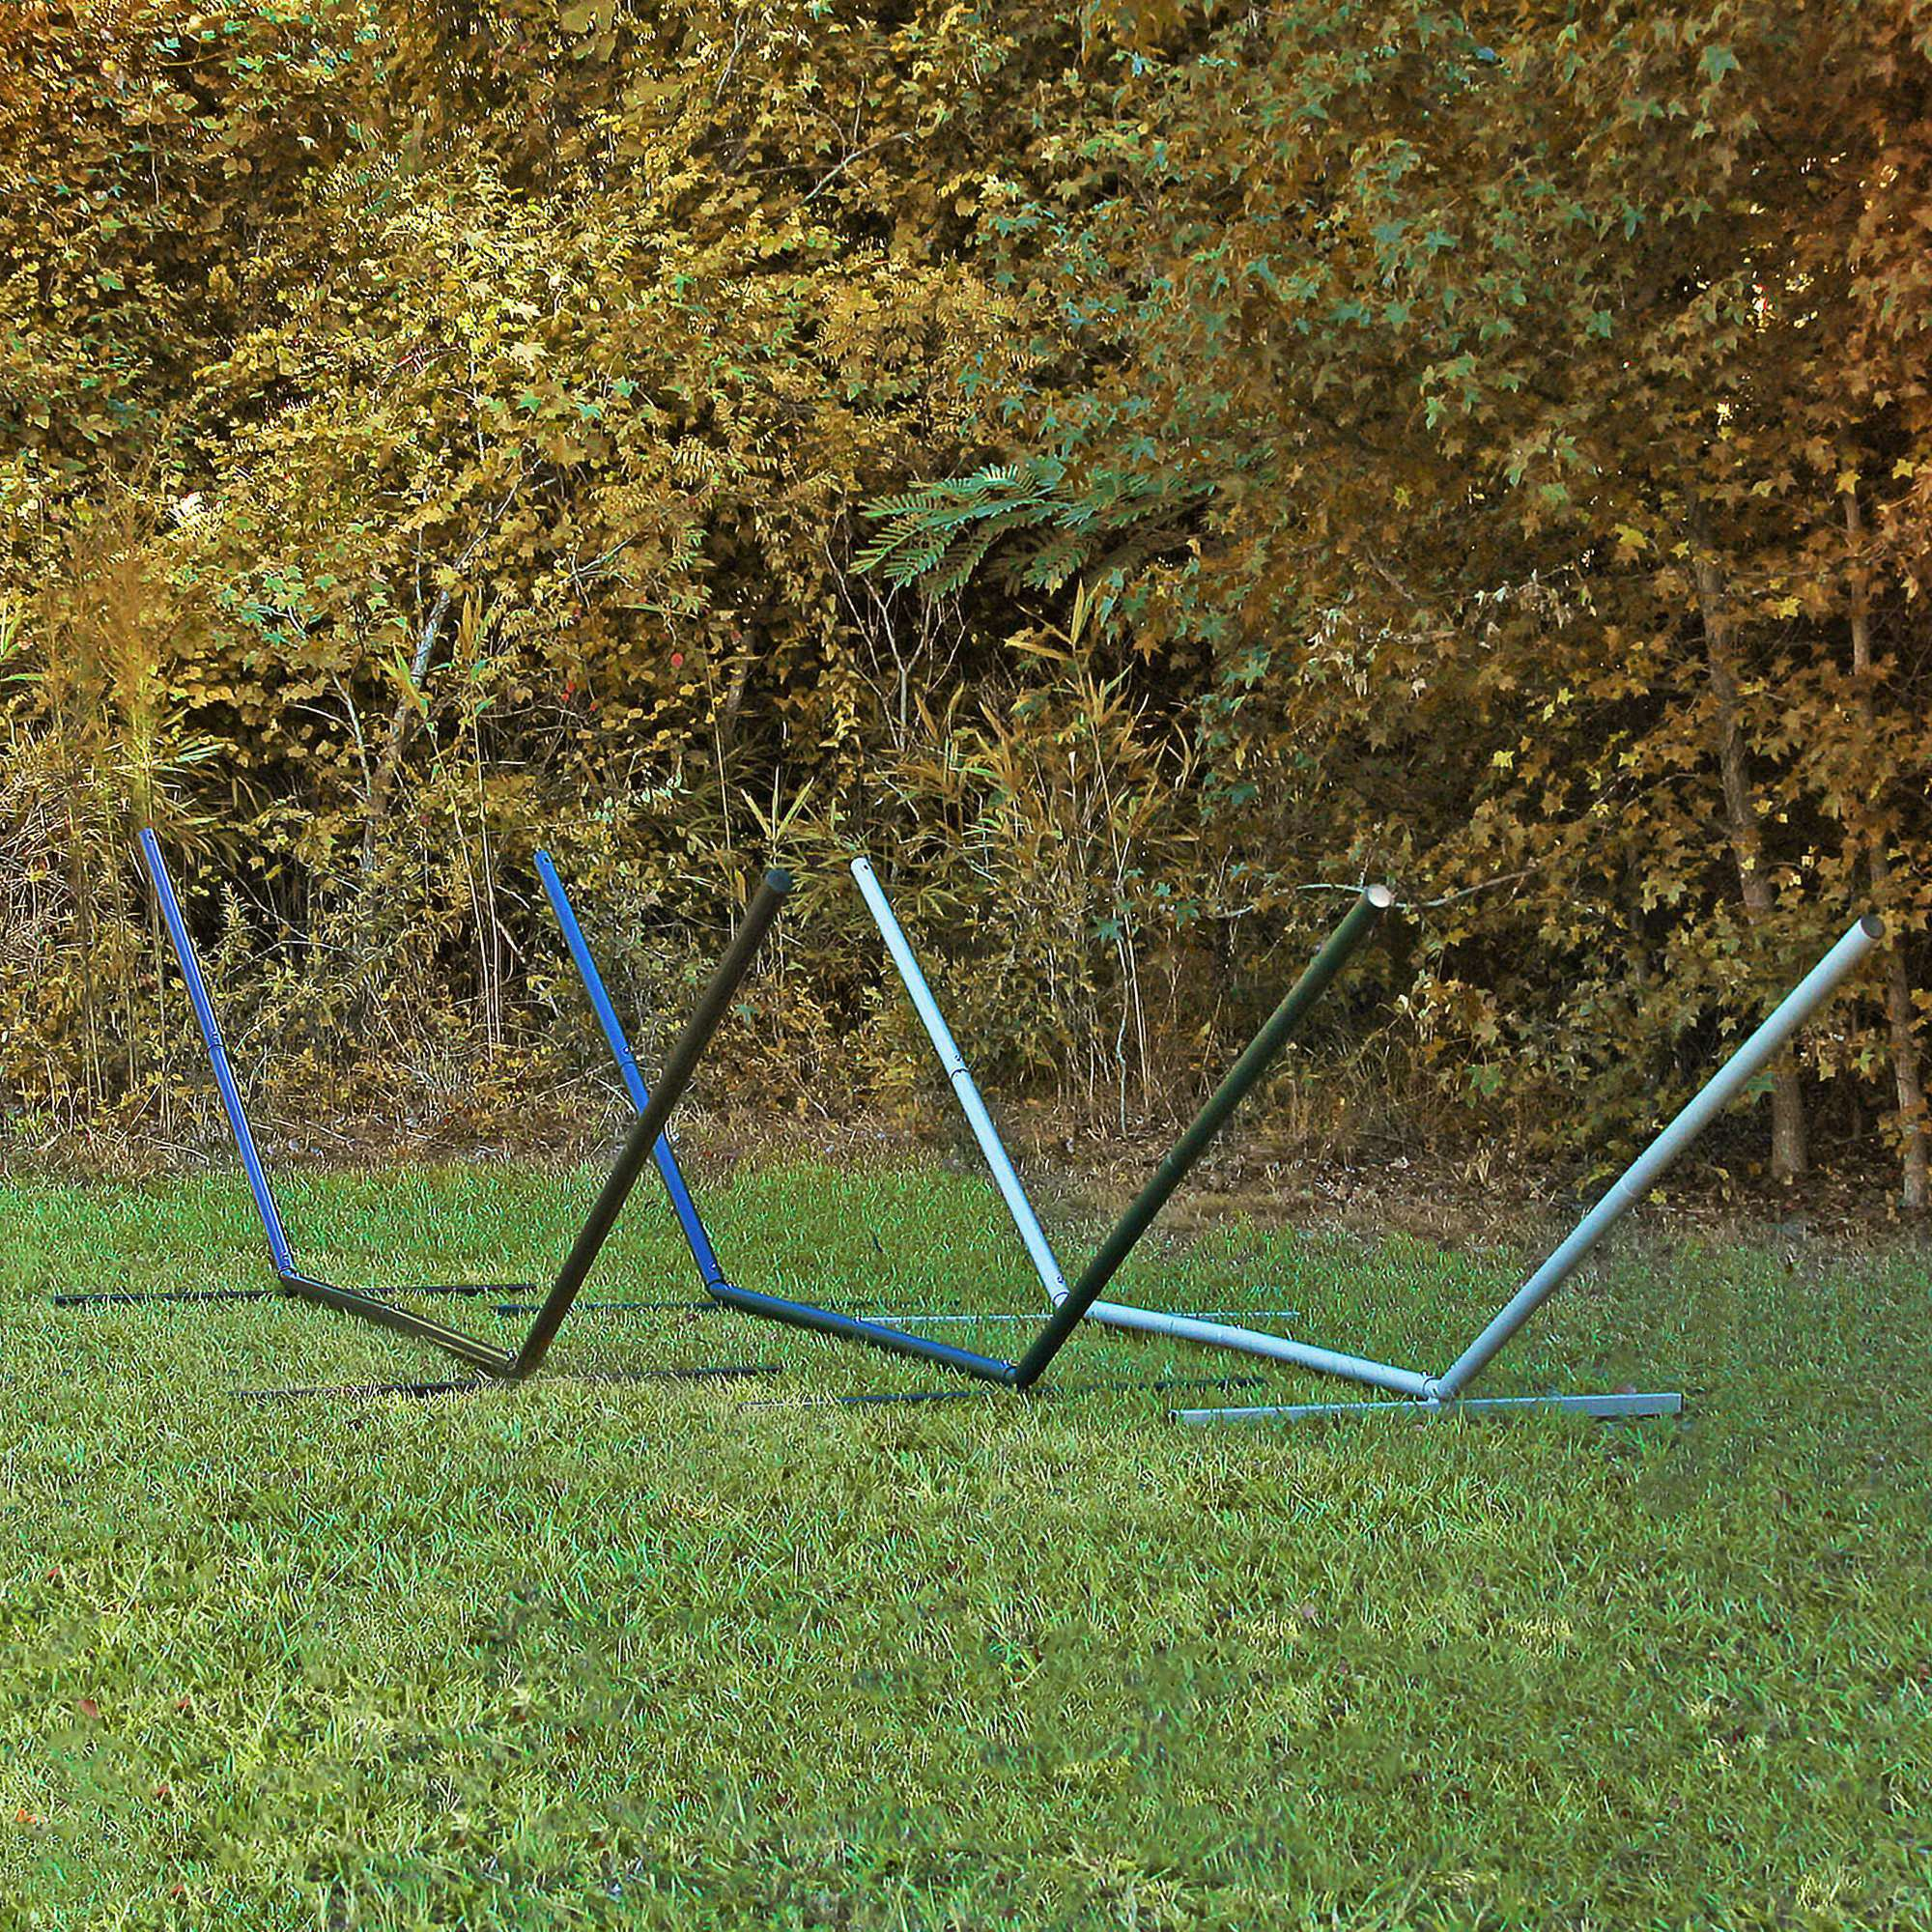 15 ft compactable metal hammock stand multiple color options available